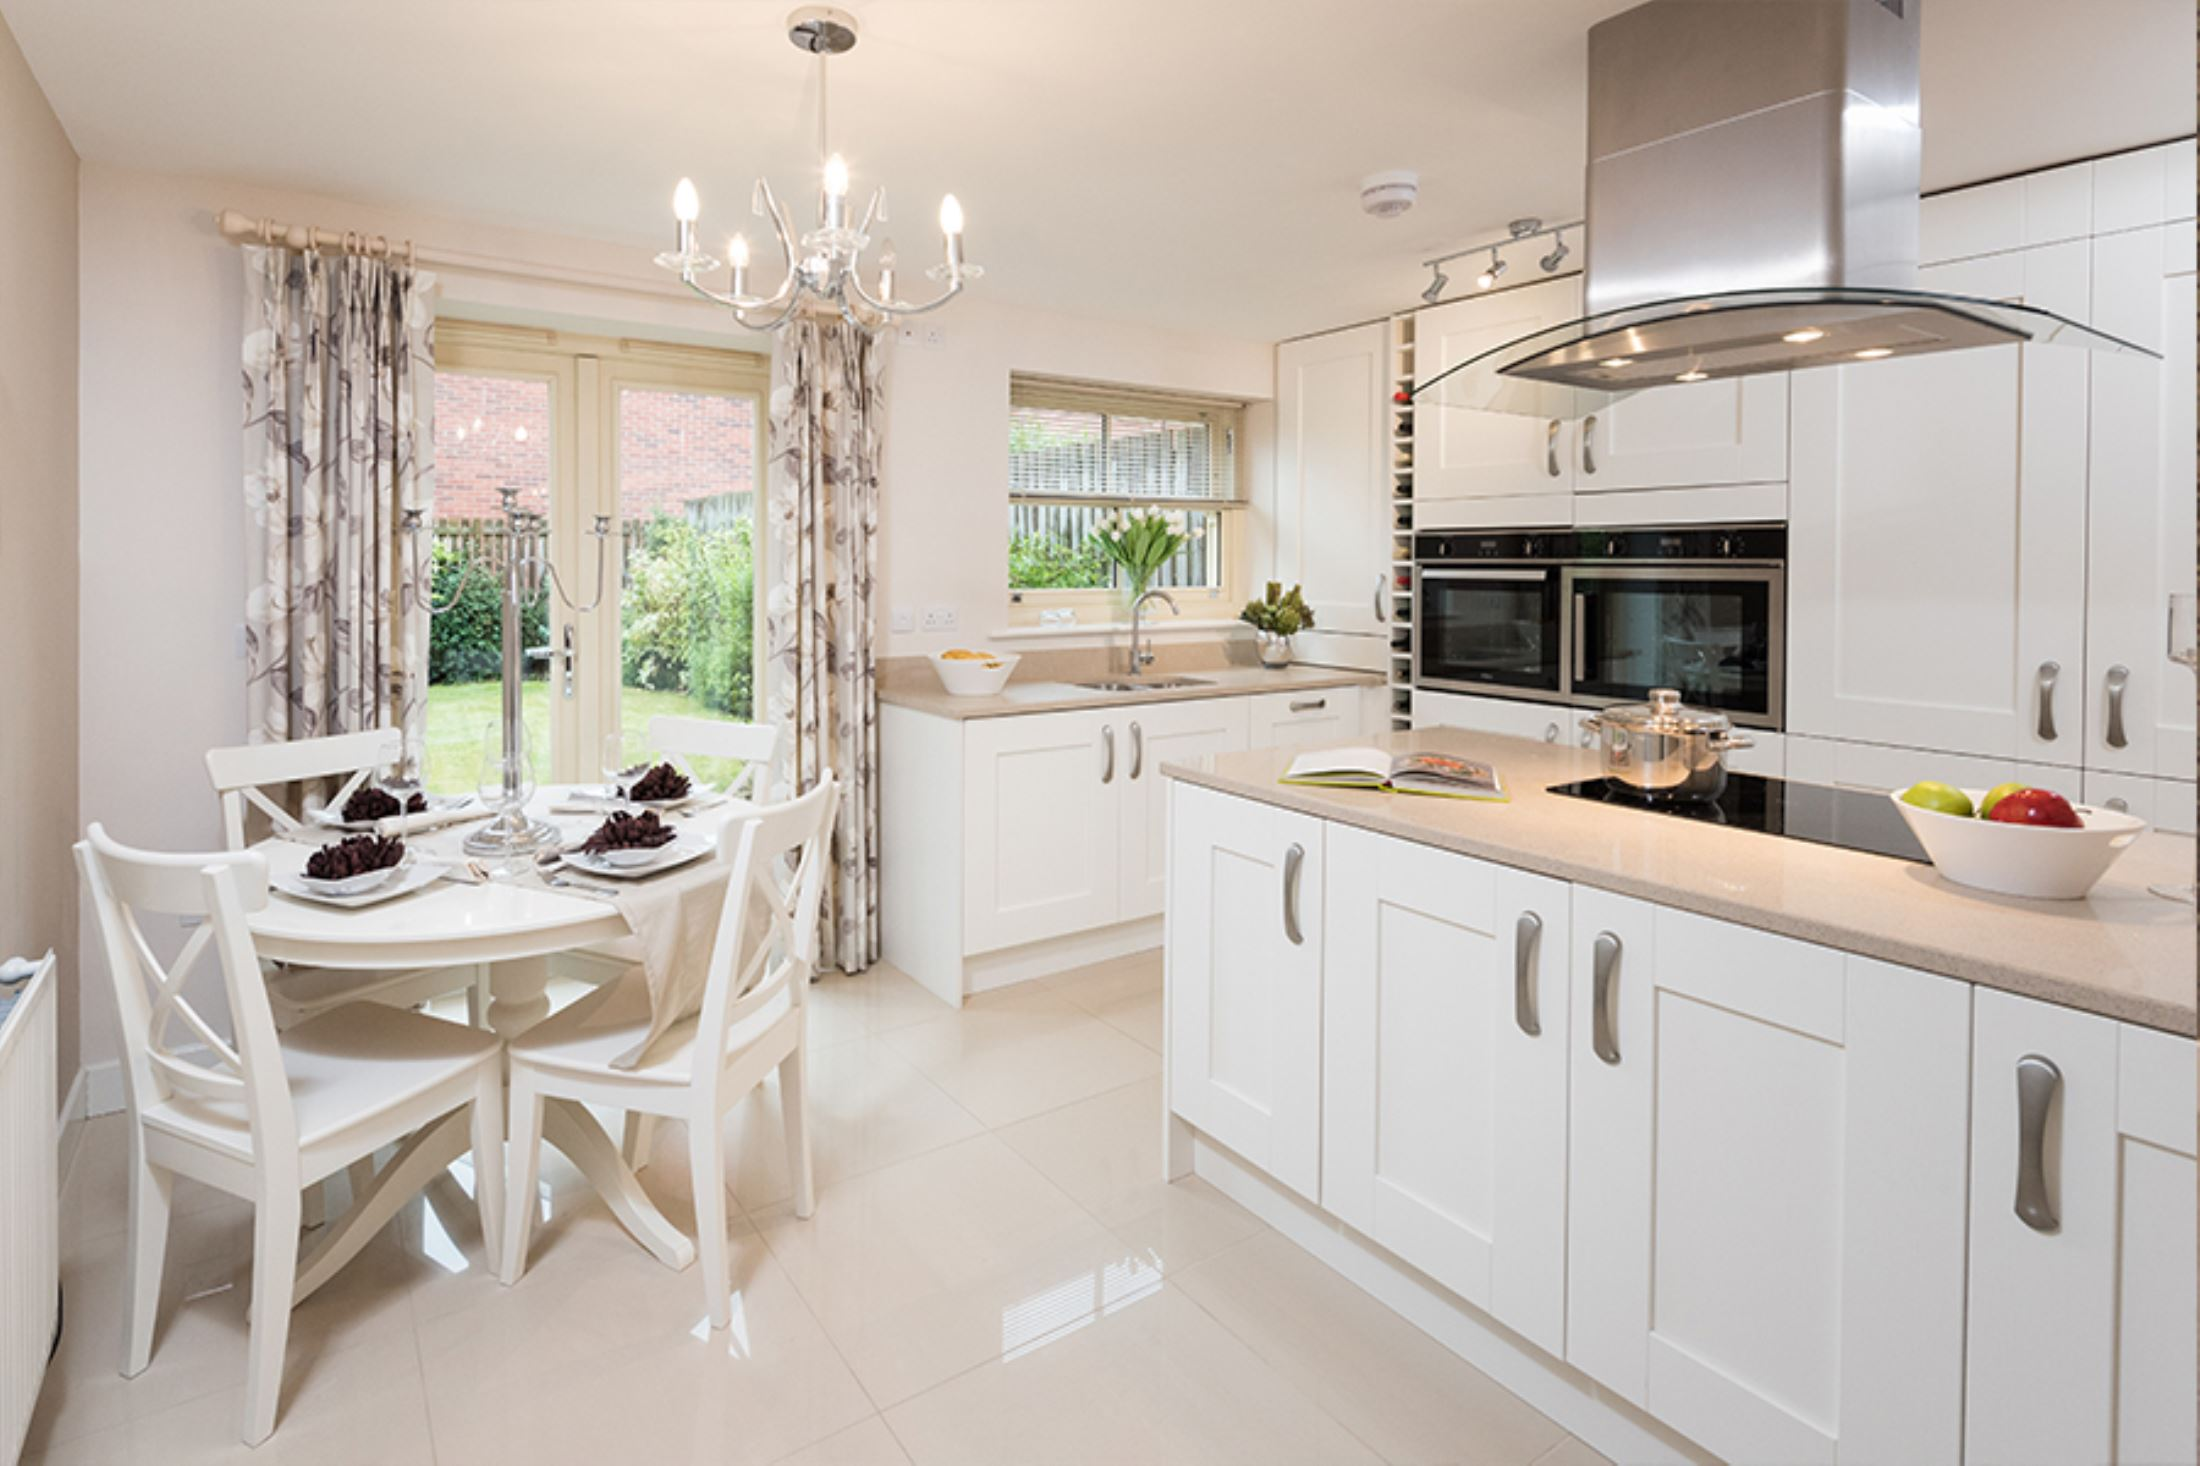 hawthorn kitchen gladstone horsforth grange